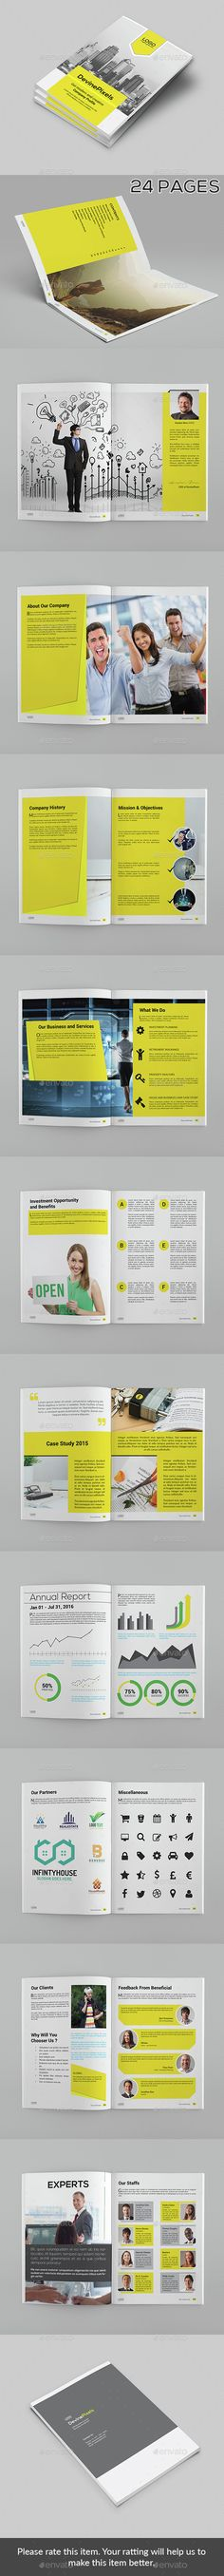 24 Pages Modern Company Profile Brochure Template InDesign INDD. Download here: http://graphicriver.net/item/modern-company-profile-brochure/15226865?ref=ksioks